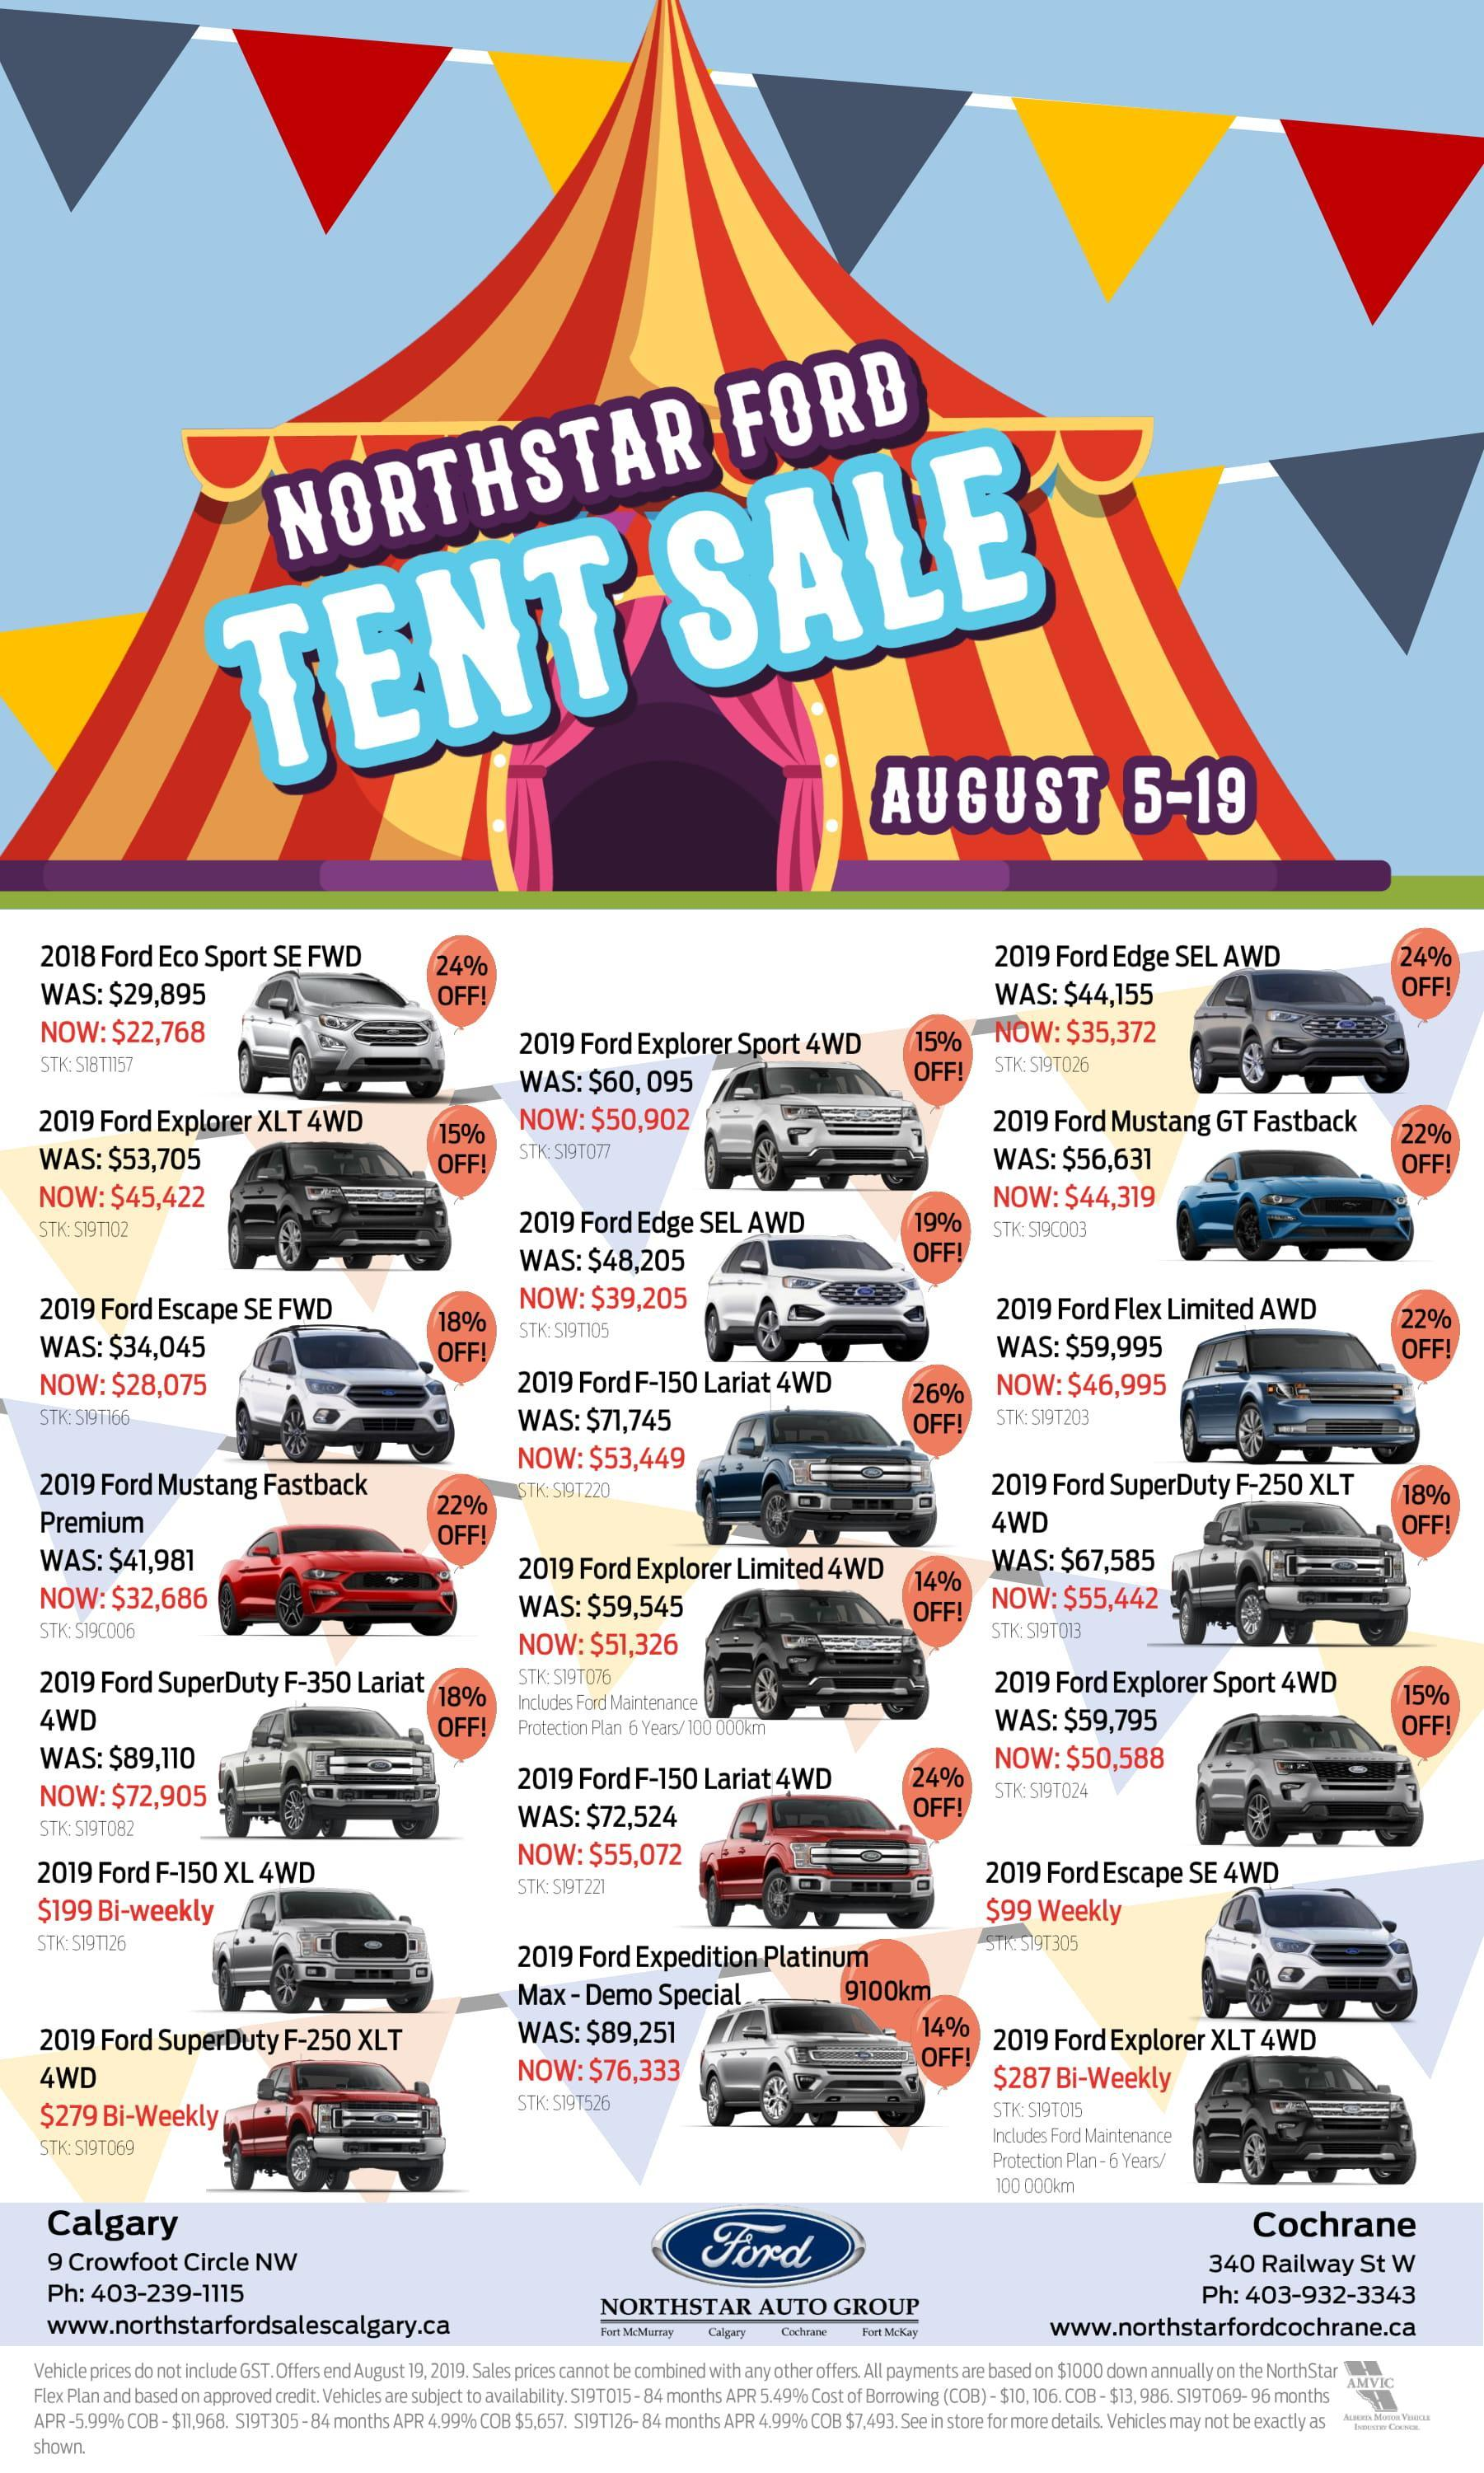 Ford Northstar Ford Special Offers image